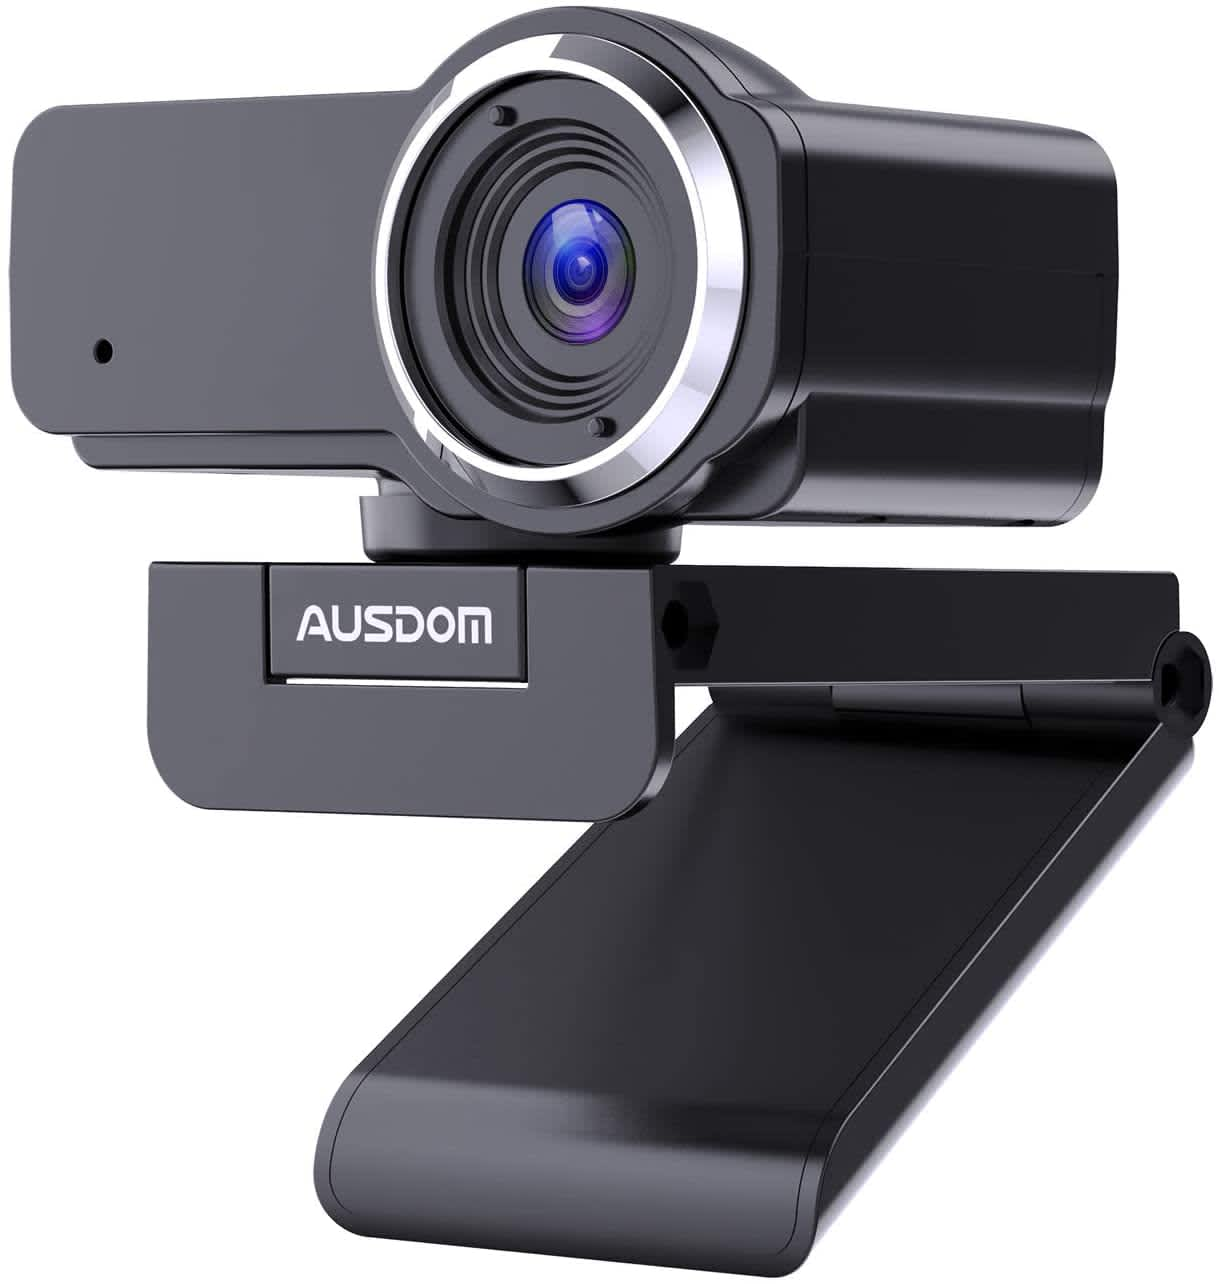 Ausdom 1080p Webcam with Microphone